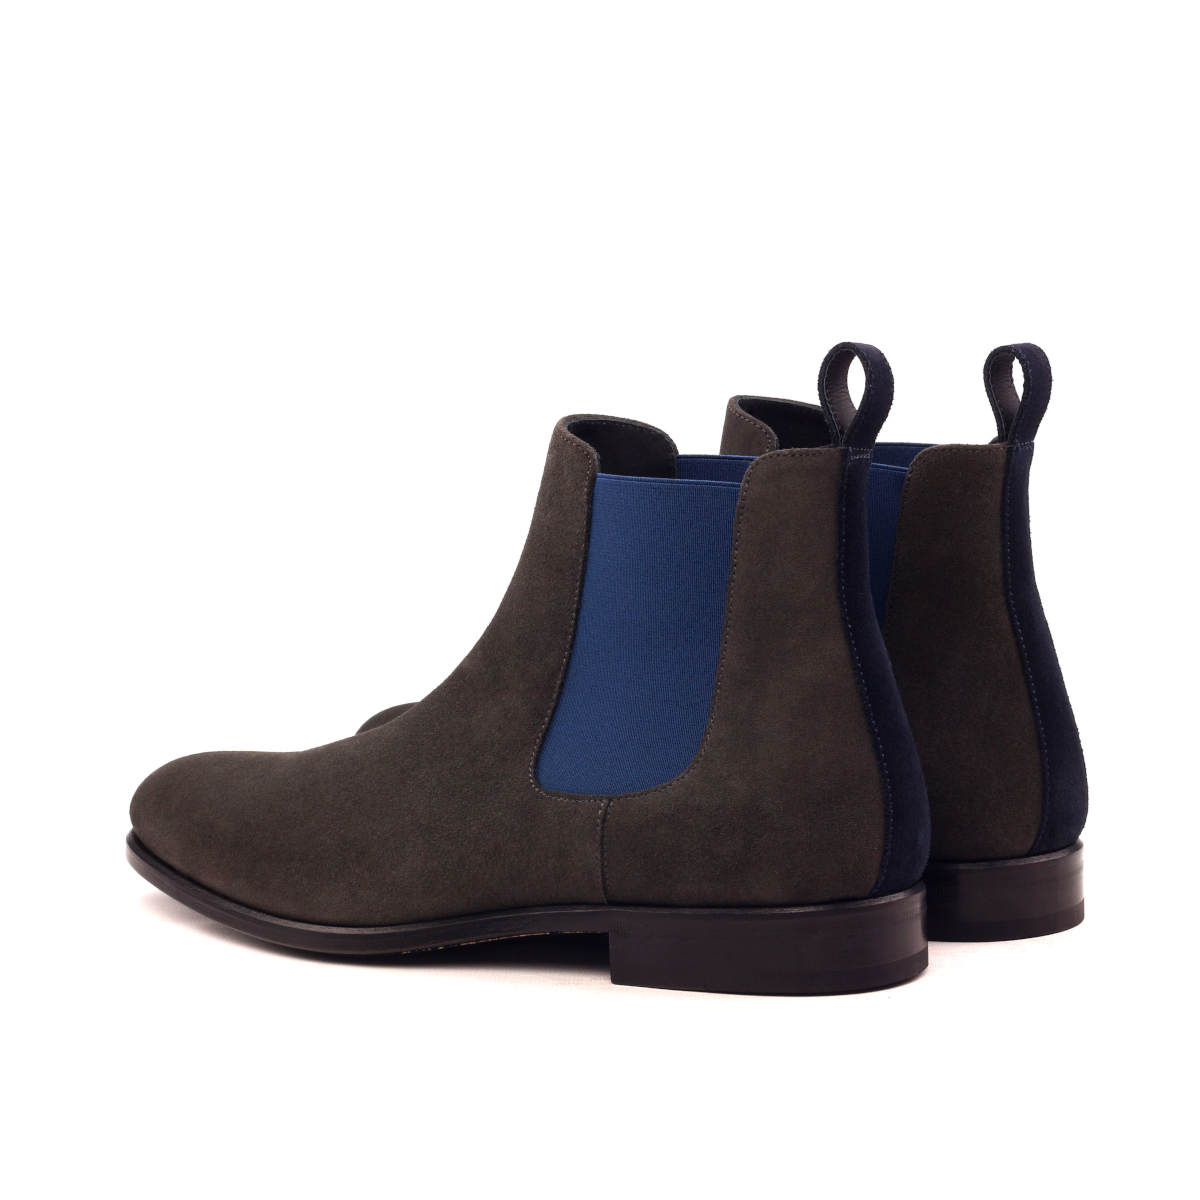 054760d25aadb Chelsea boot stone grey lux suede - Cambrillón Bespoke Leather